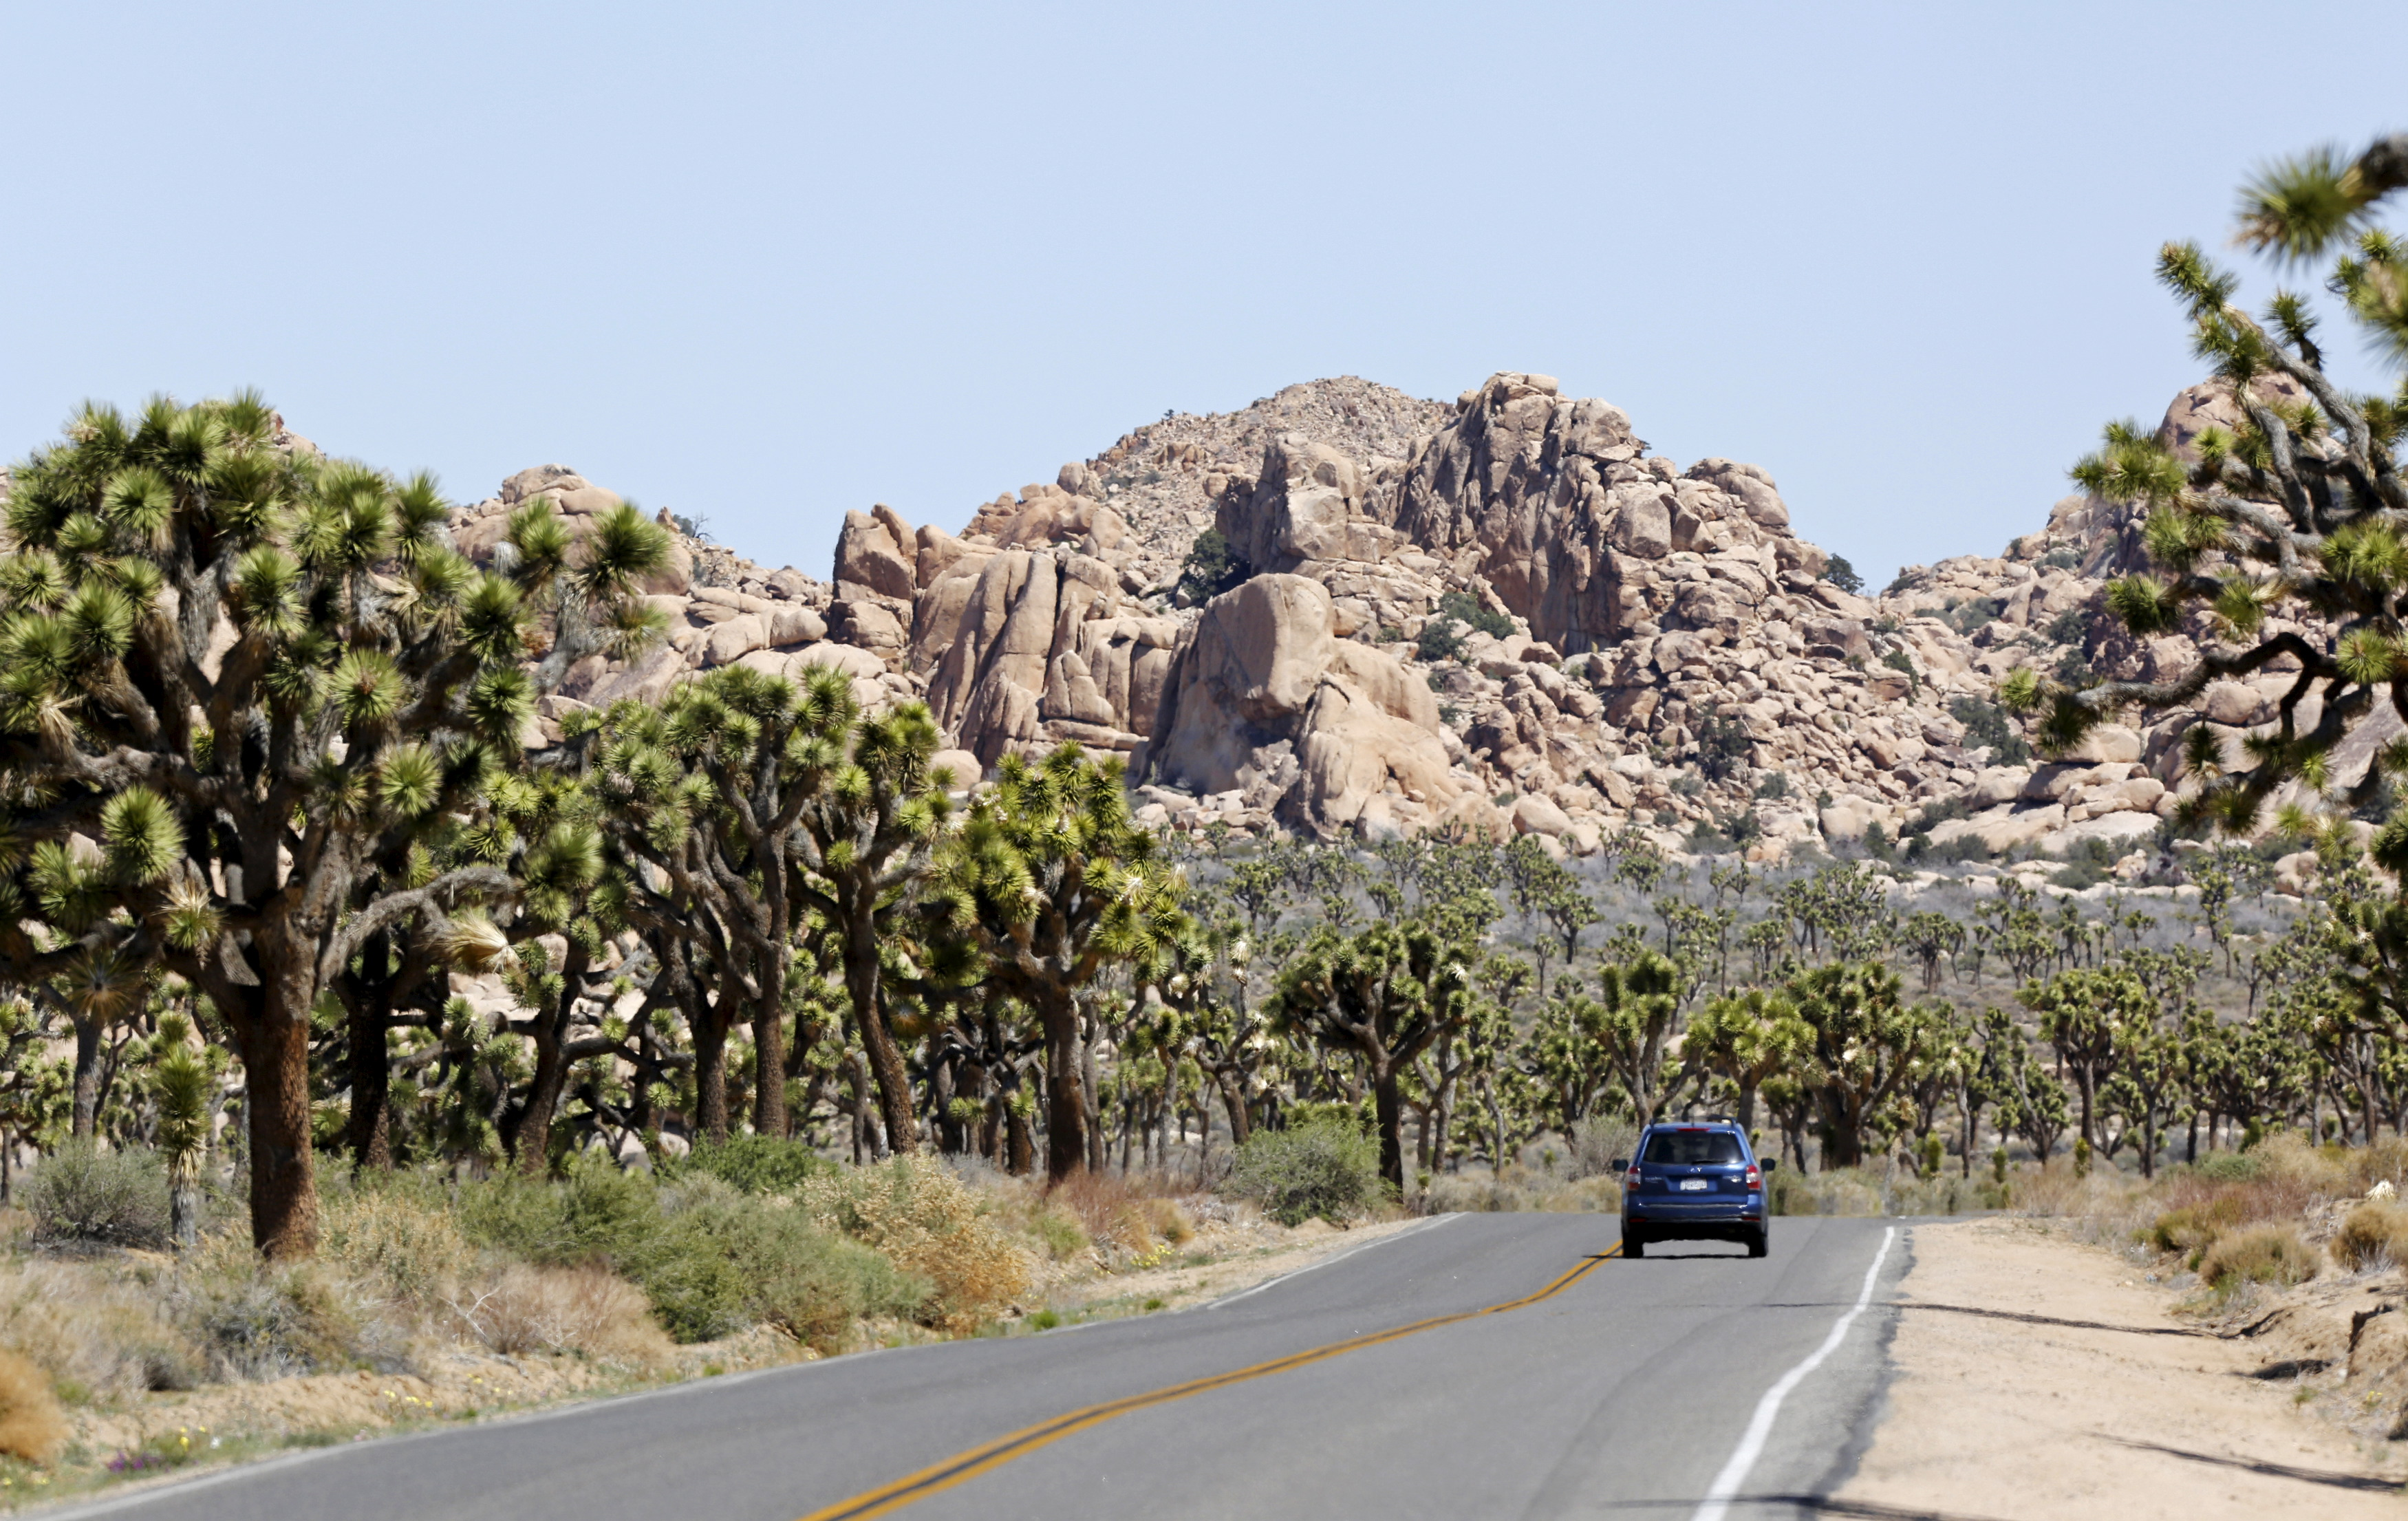 A car is driven in Joshua Tree National Park, California, in this photo taken April 16, 2015. REUTERS/ Sam Mircovich